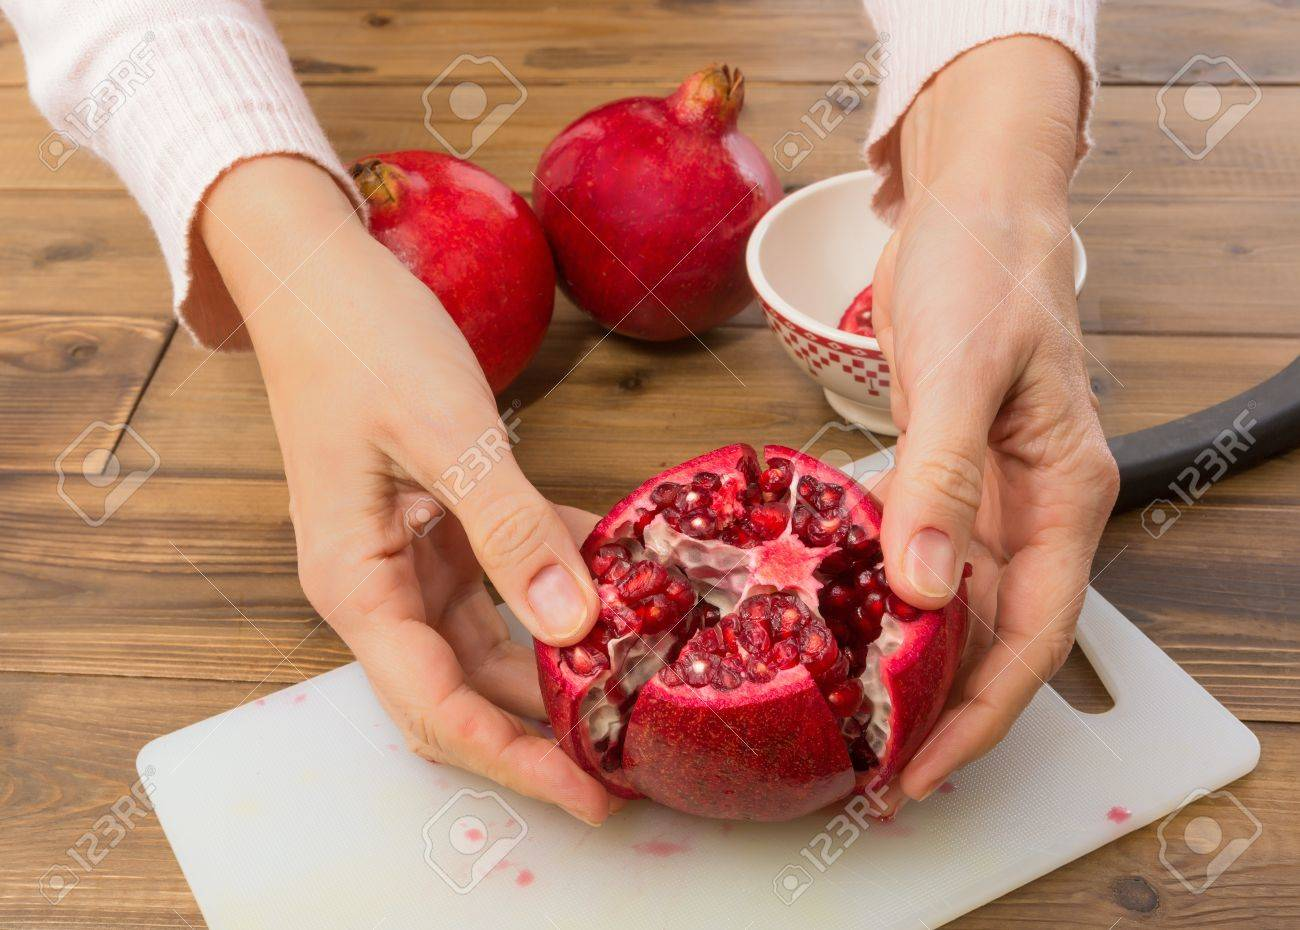 Hands opening a pomegranate and showing the seeds Stock Photo - 17779416